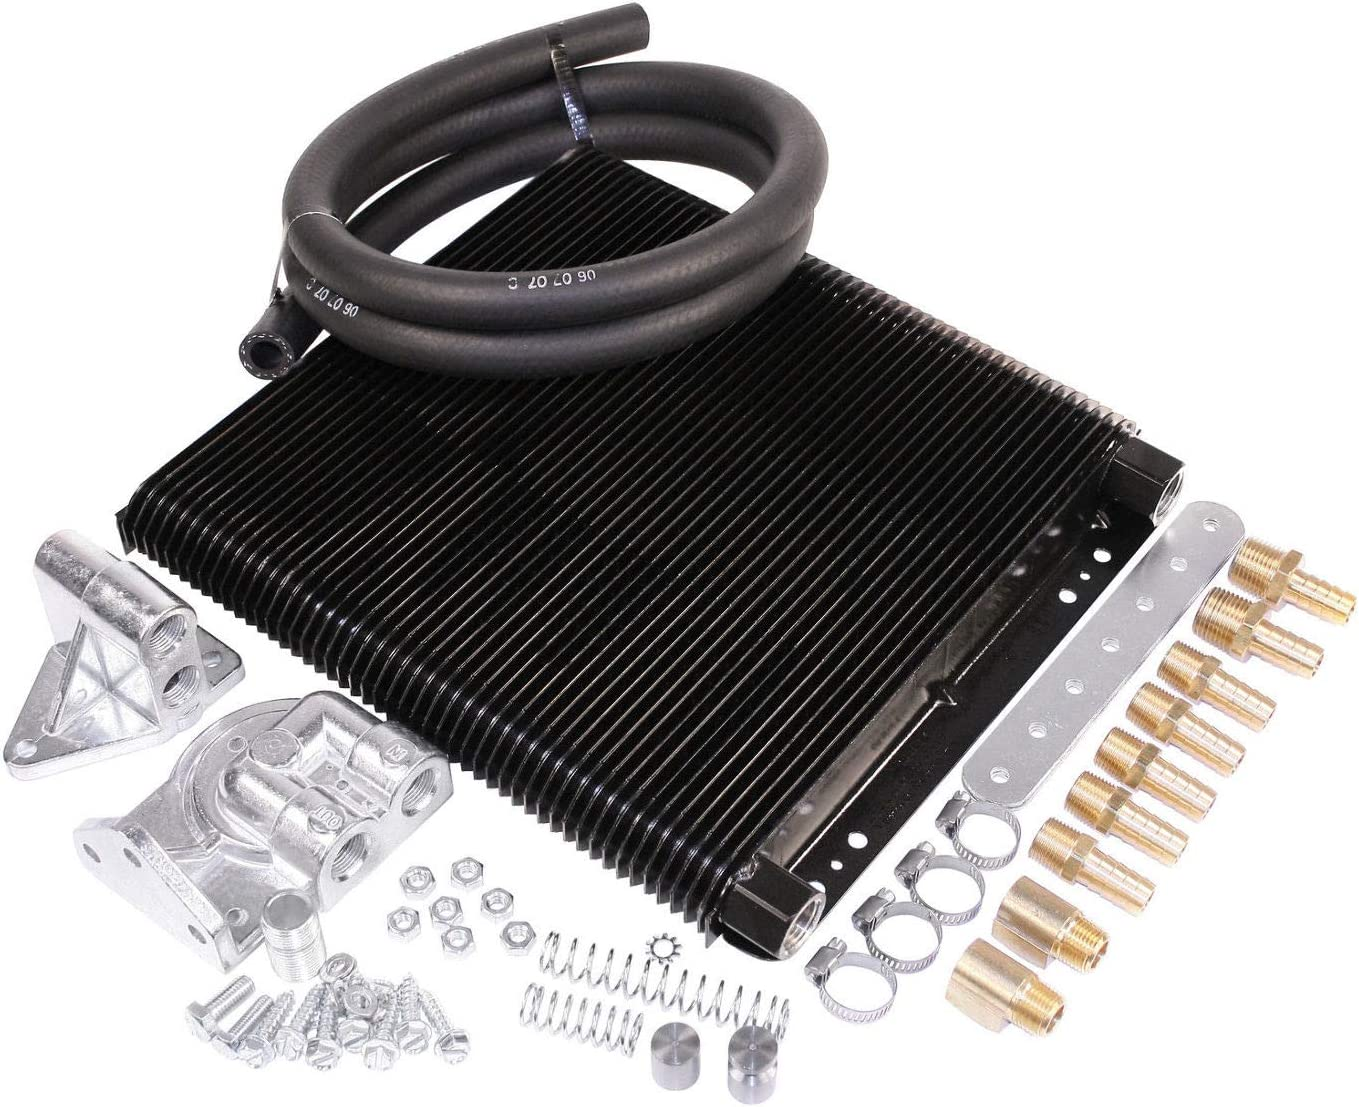 ALL T1 /& T2 Thru 71 EMPI 9270 Competition MESA Style 48 Plate Oil Cooler Kit